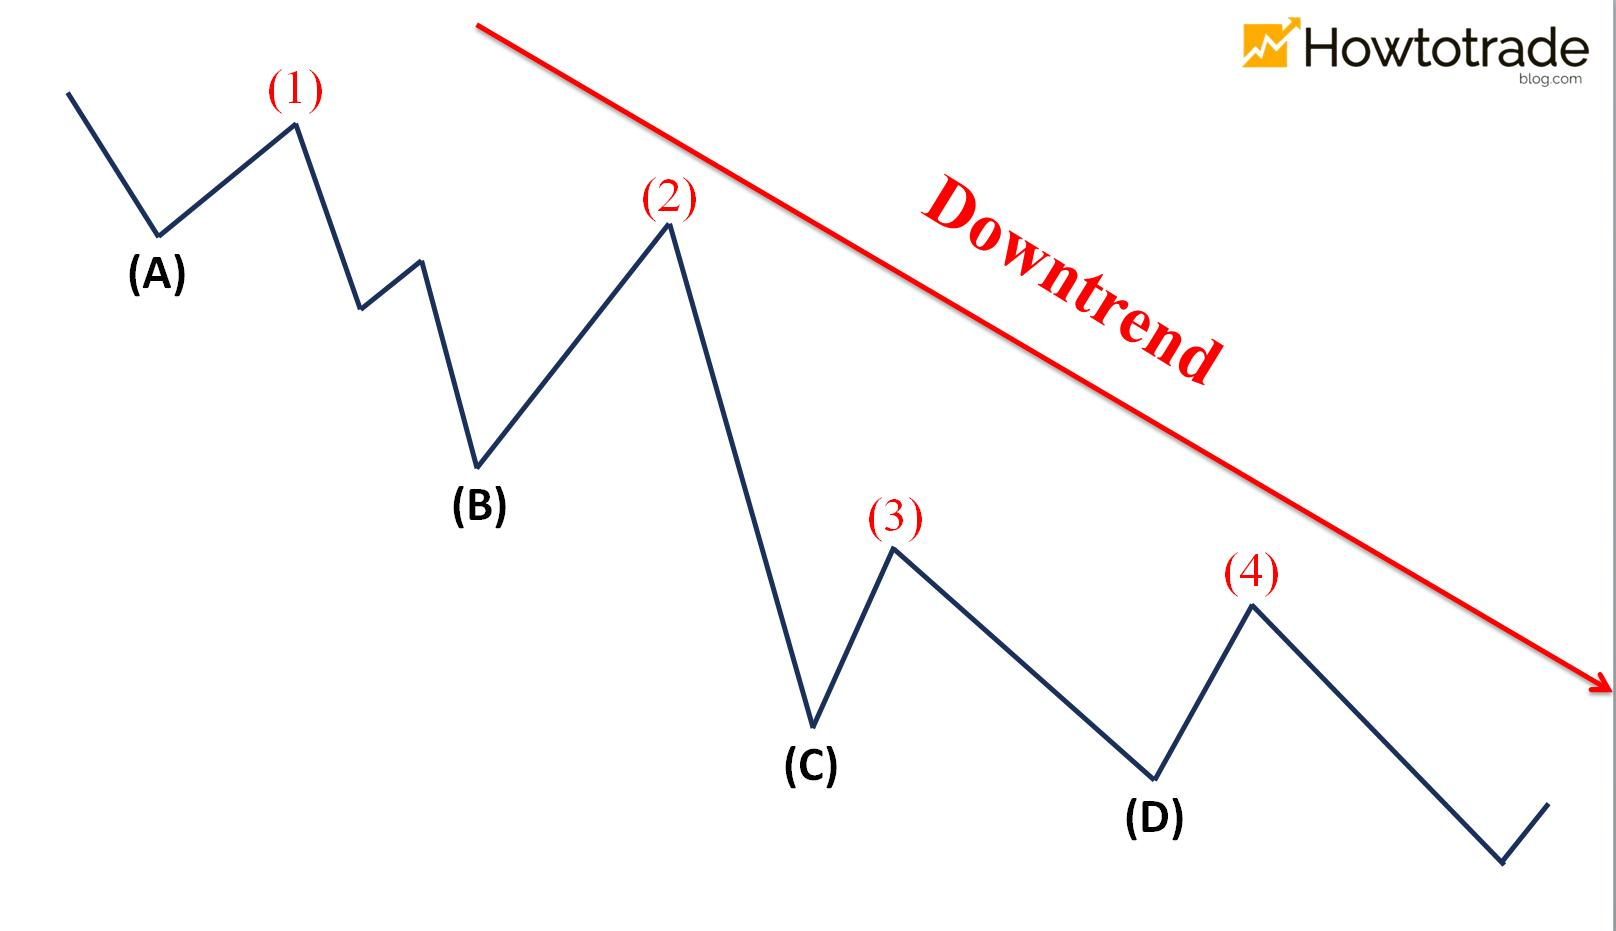 How to identify a downtrend